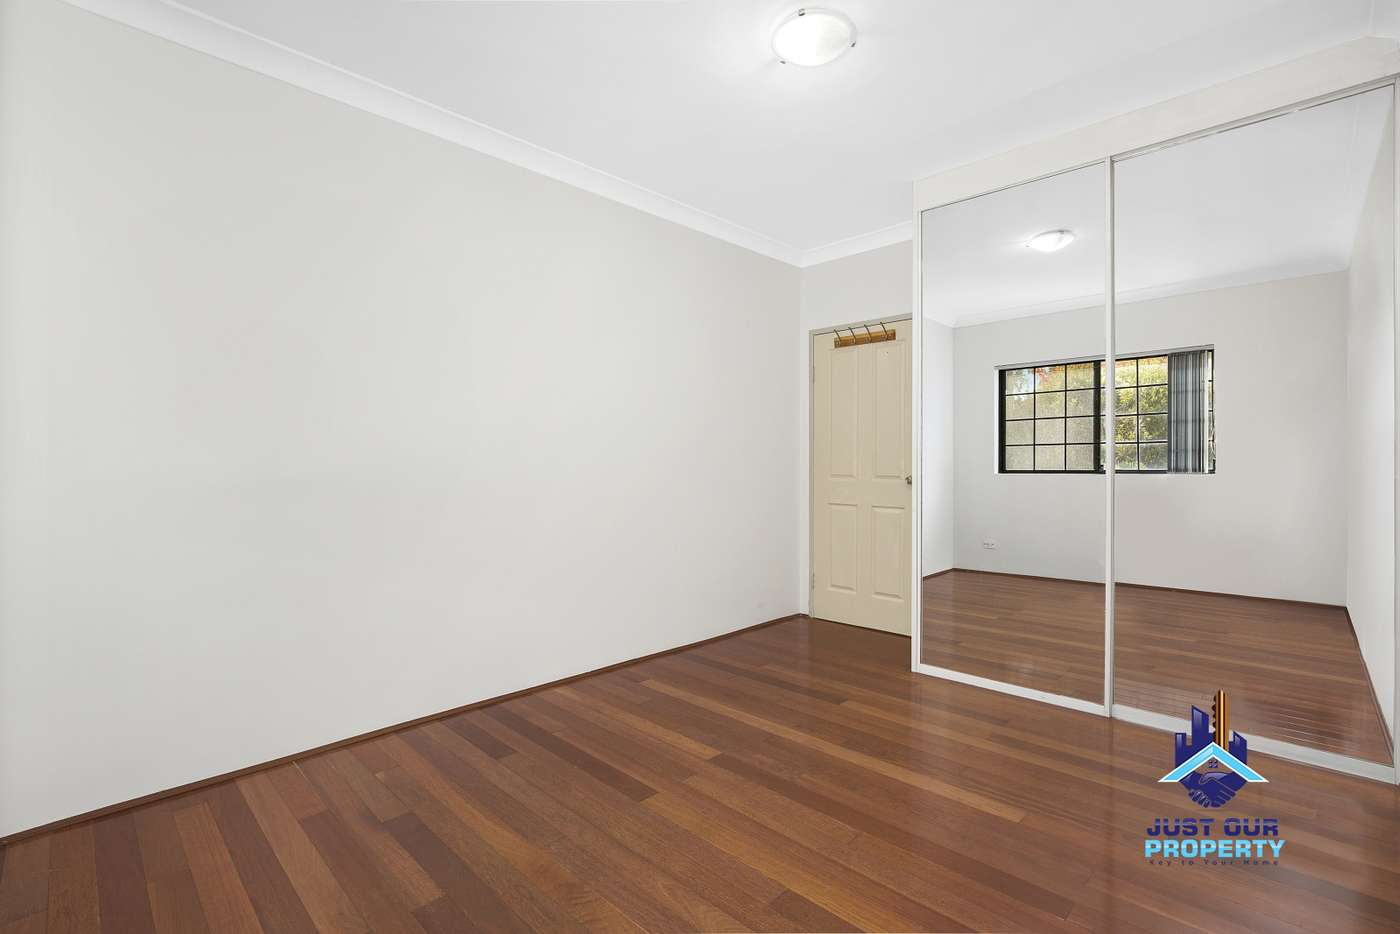 Sixth view of Homely apartment listing, 24-25 South Pde, Campsie NSW 2194